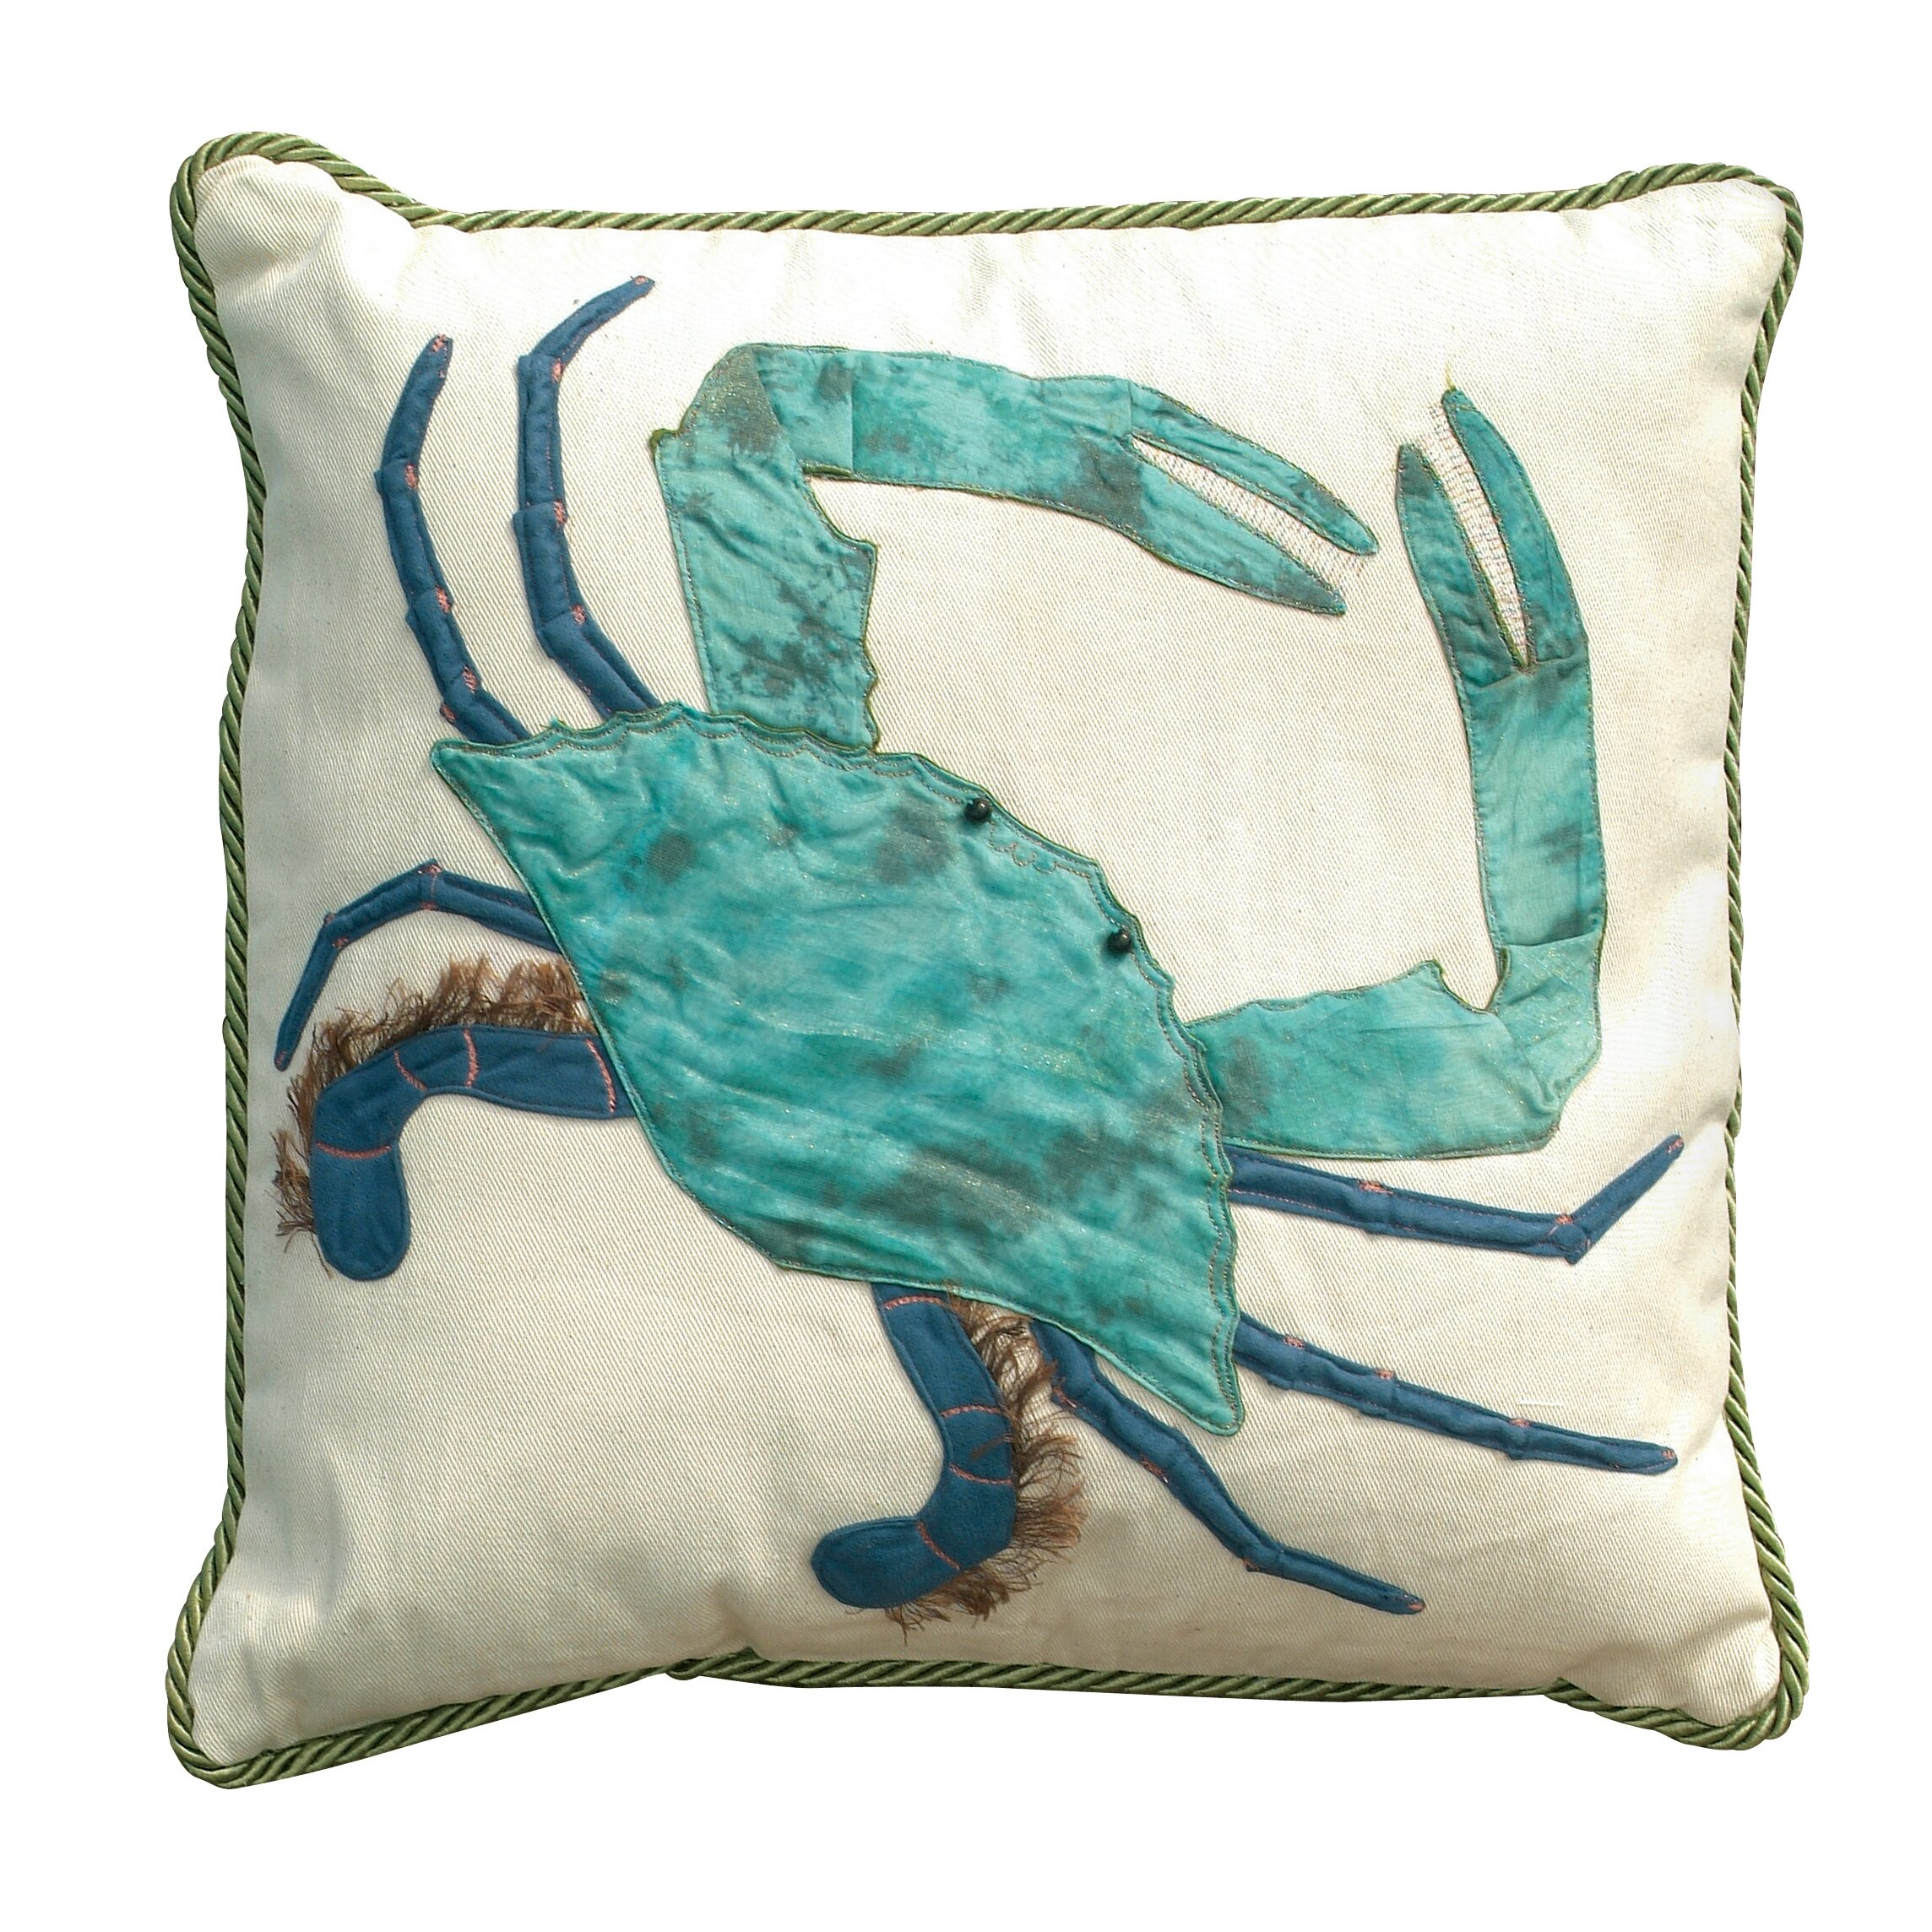 Rightside Design I Sea Life King of the Chesapeake Crab Cotton Throw Pillow & Reviews Wayfair